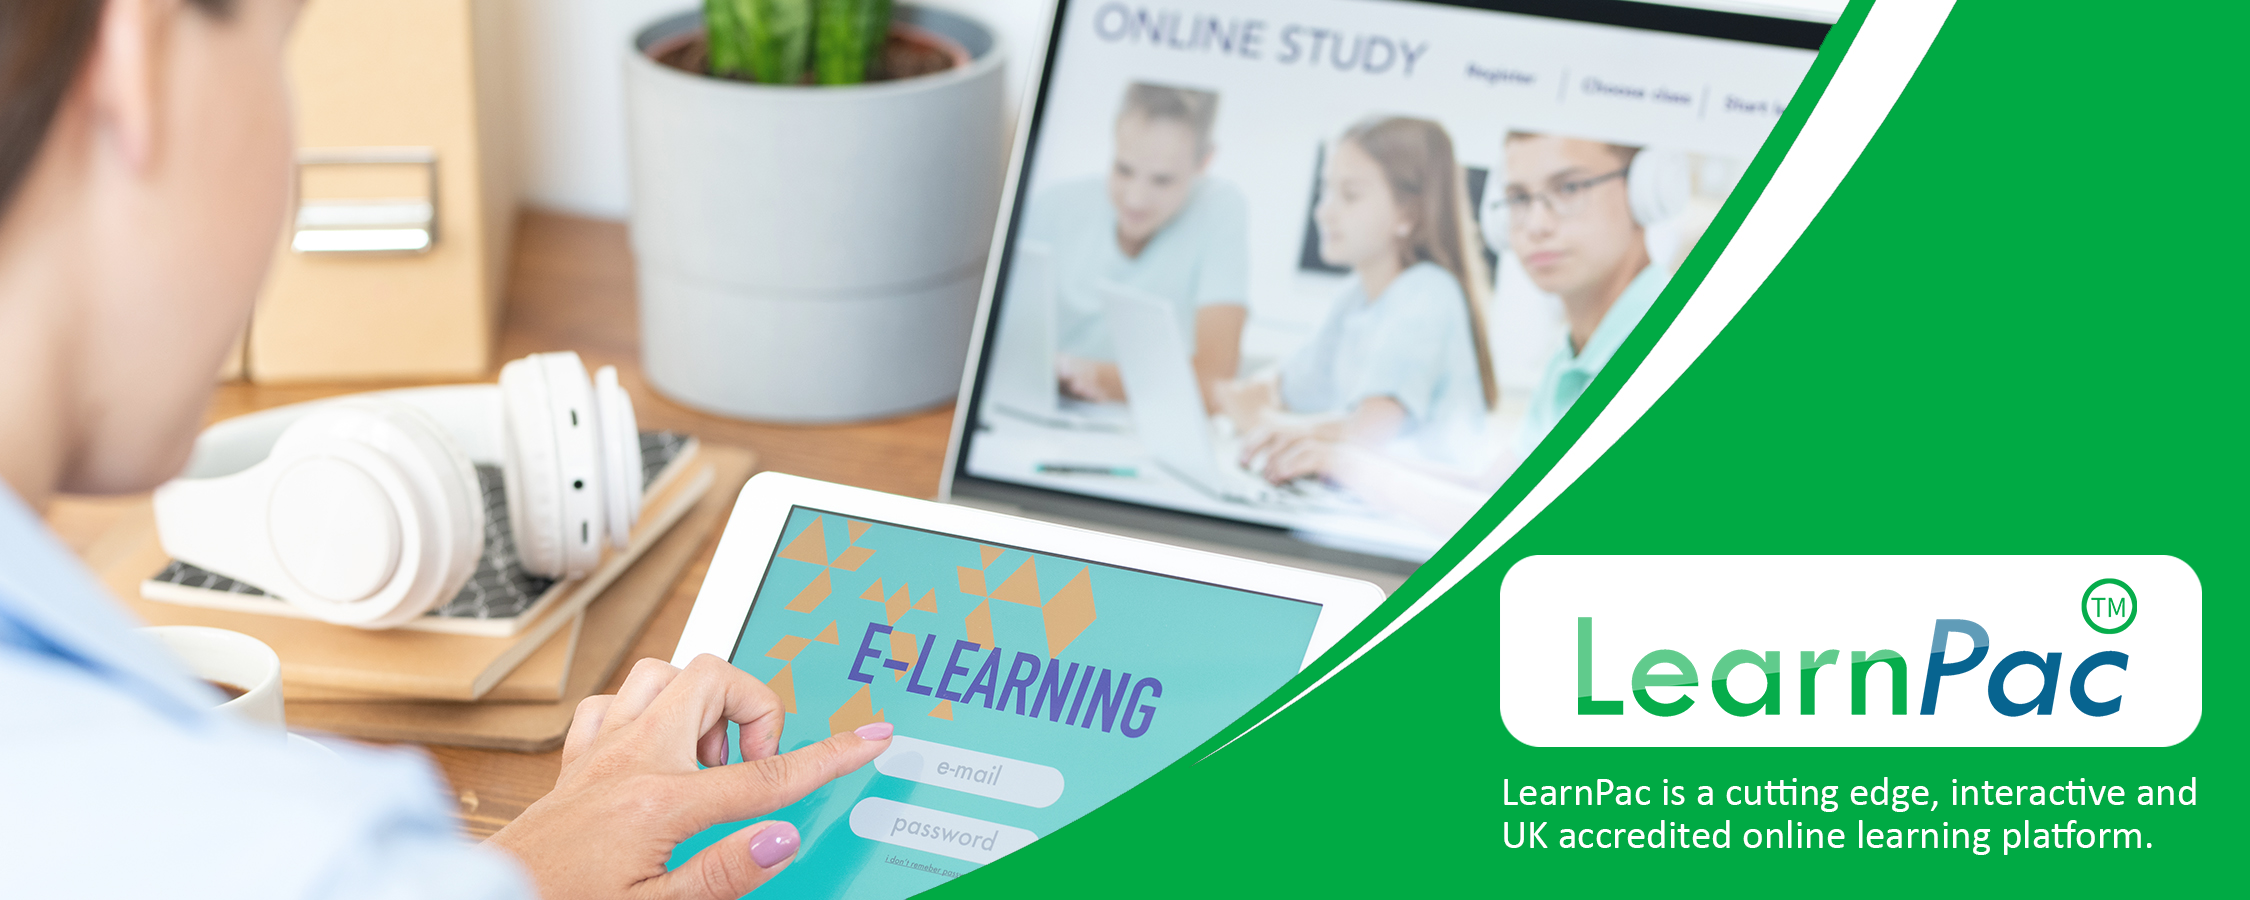 Oral Cancer - Early Recognition and Management - Online Learning Courses - E-Learning Courses - LearnPac Systems UK -